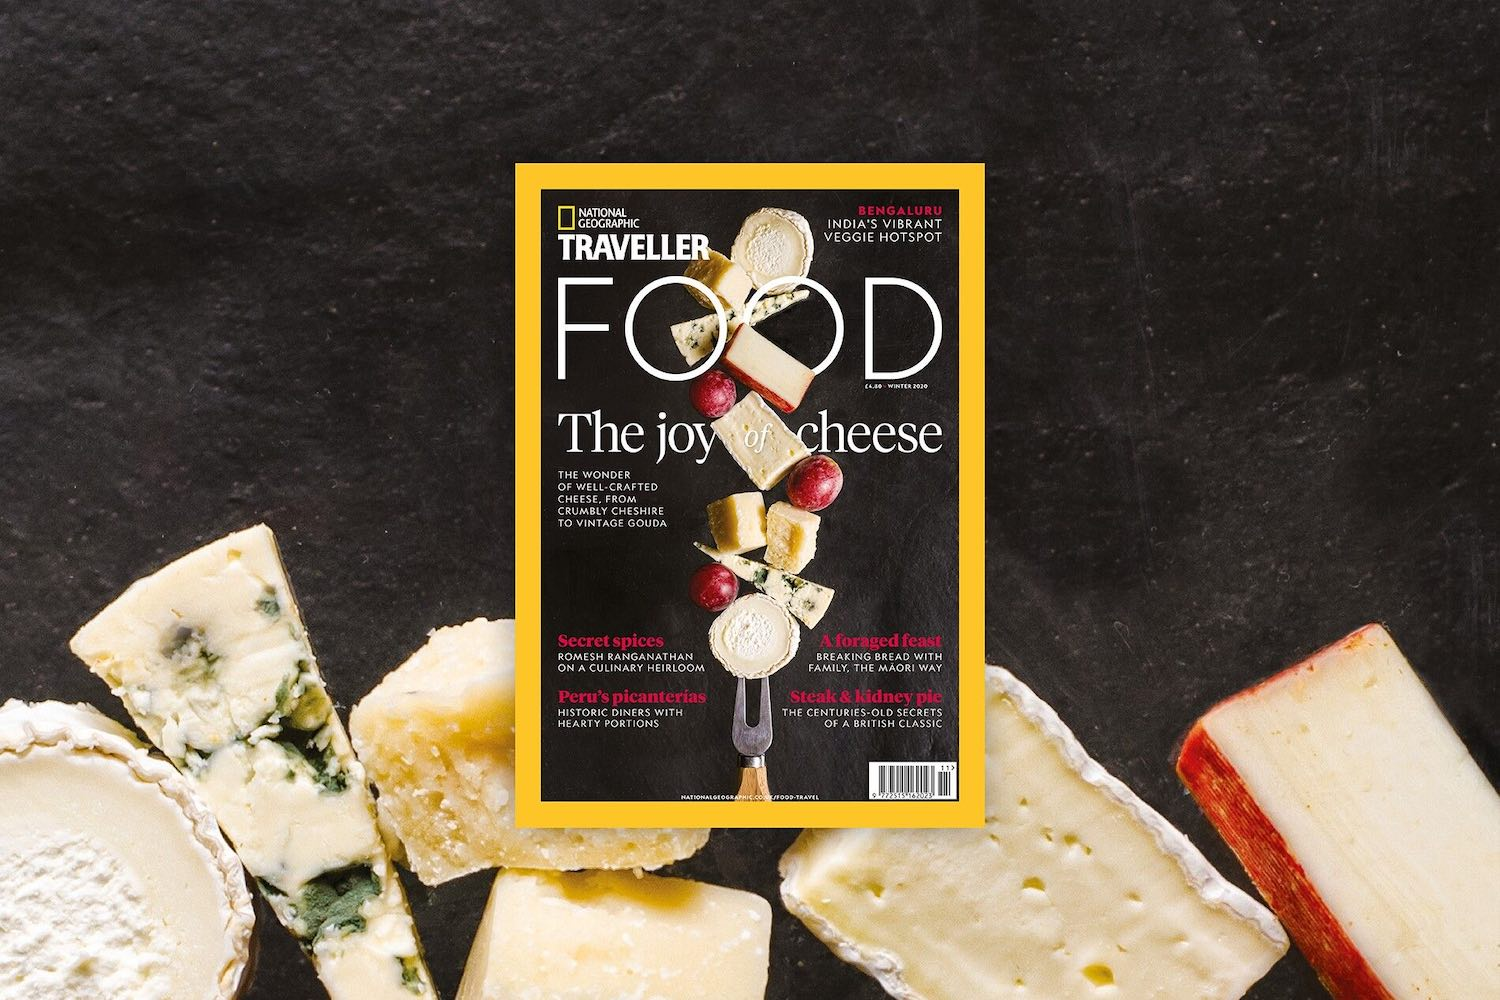 National Geographic Traveller Food celebrates the joy of Cheese